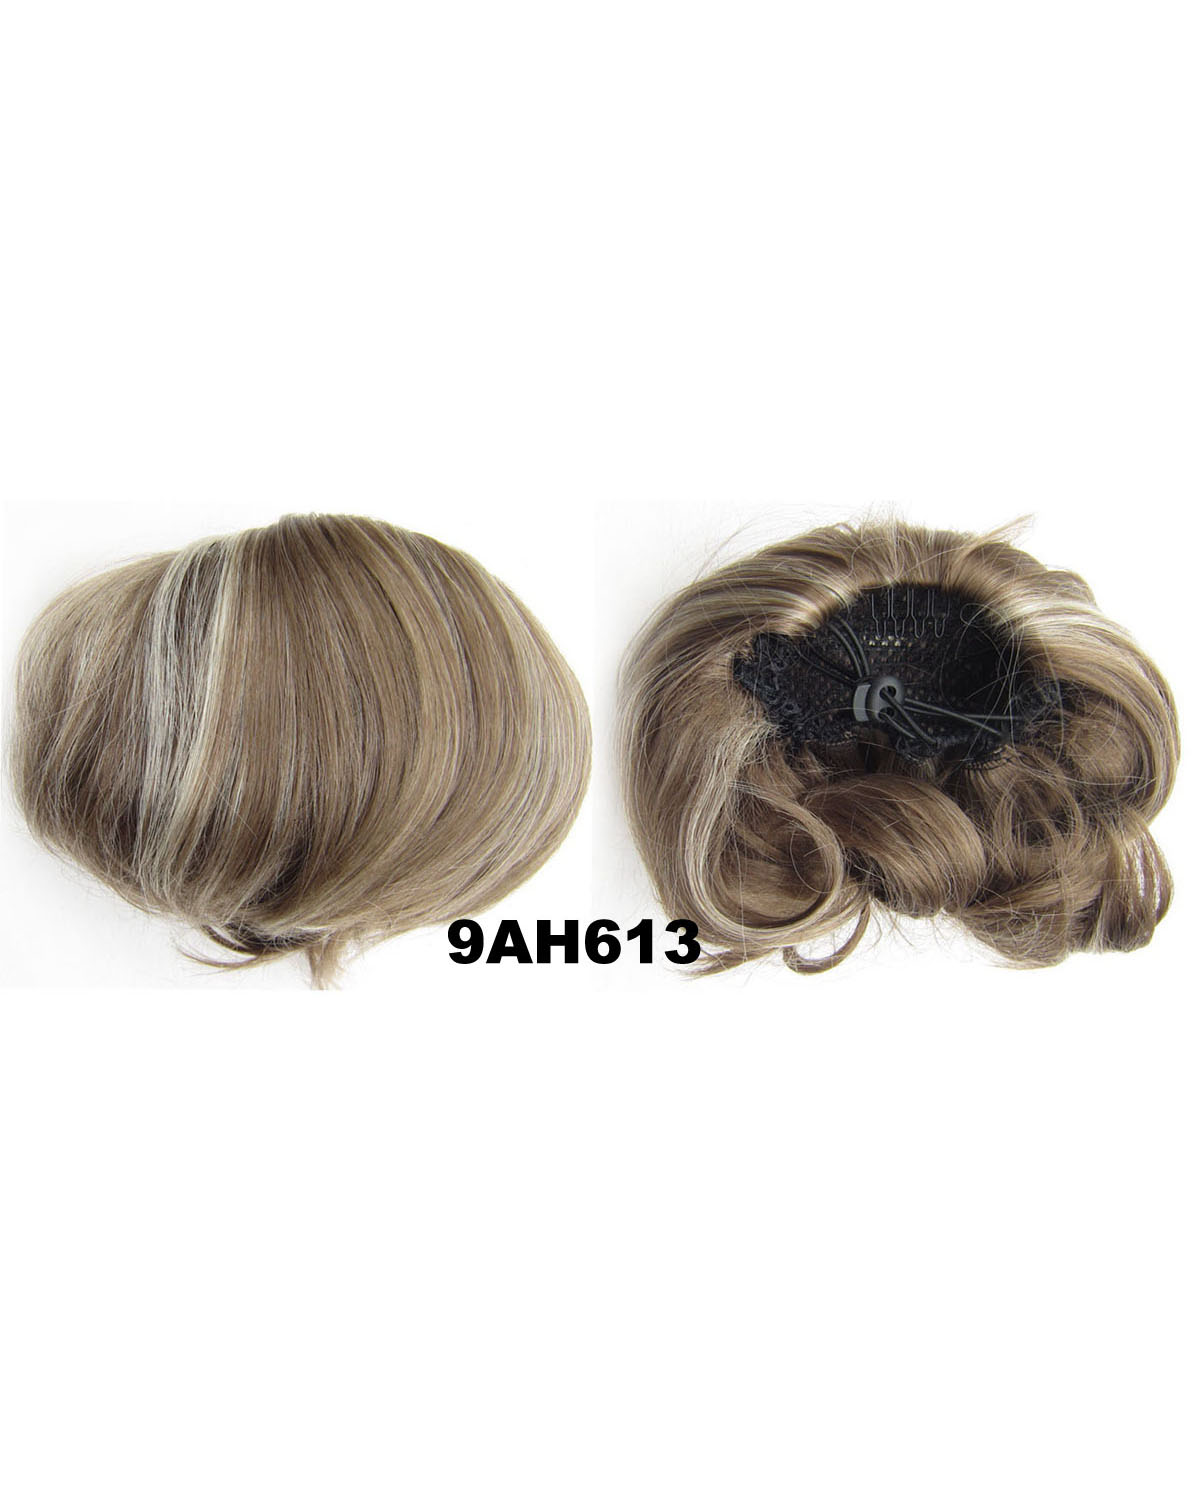 Ladies Vivid Straight Short Hair Buns Drawstring Synthetic Hair Extension Bride Scrunchies 9AH613